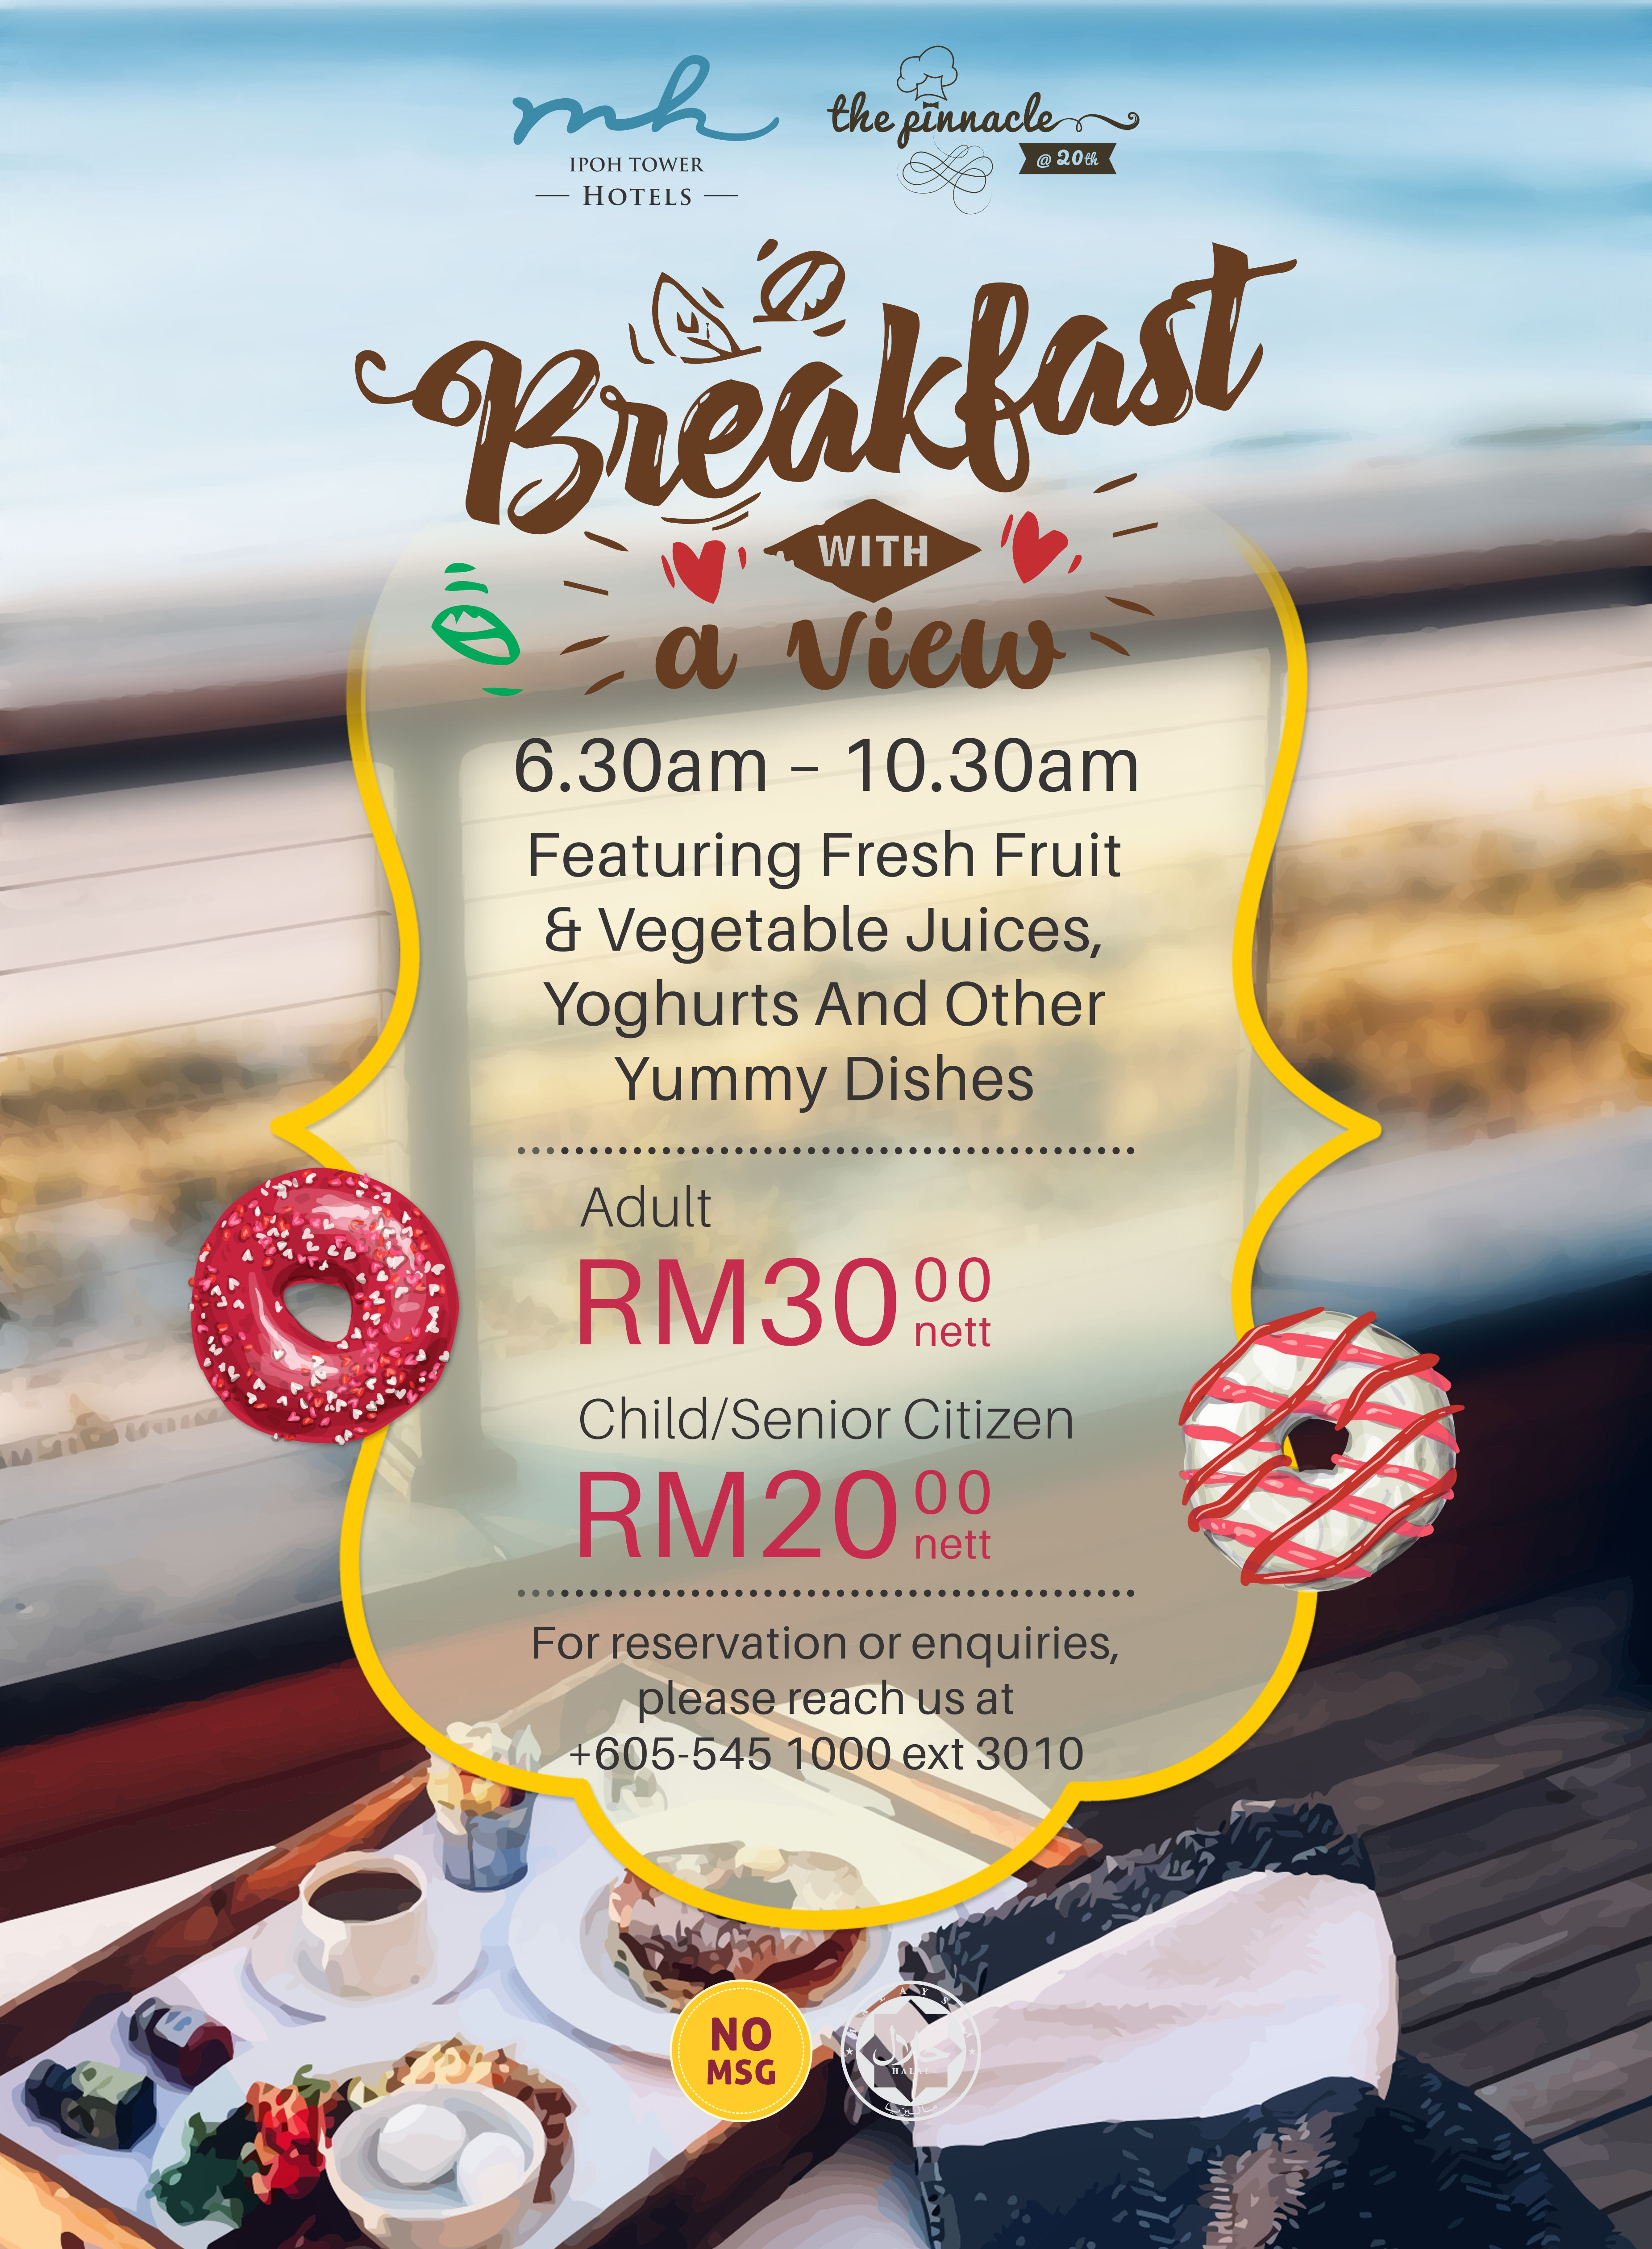 Promotions - MH Hotels